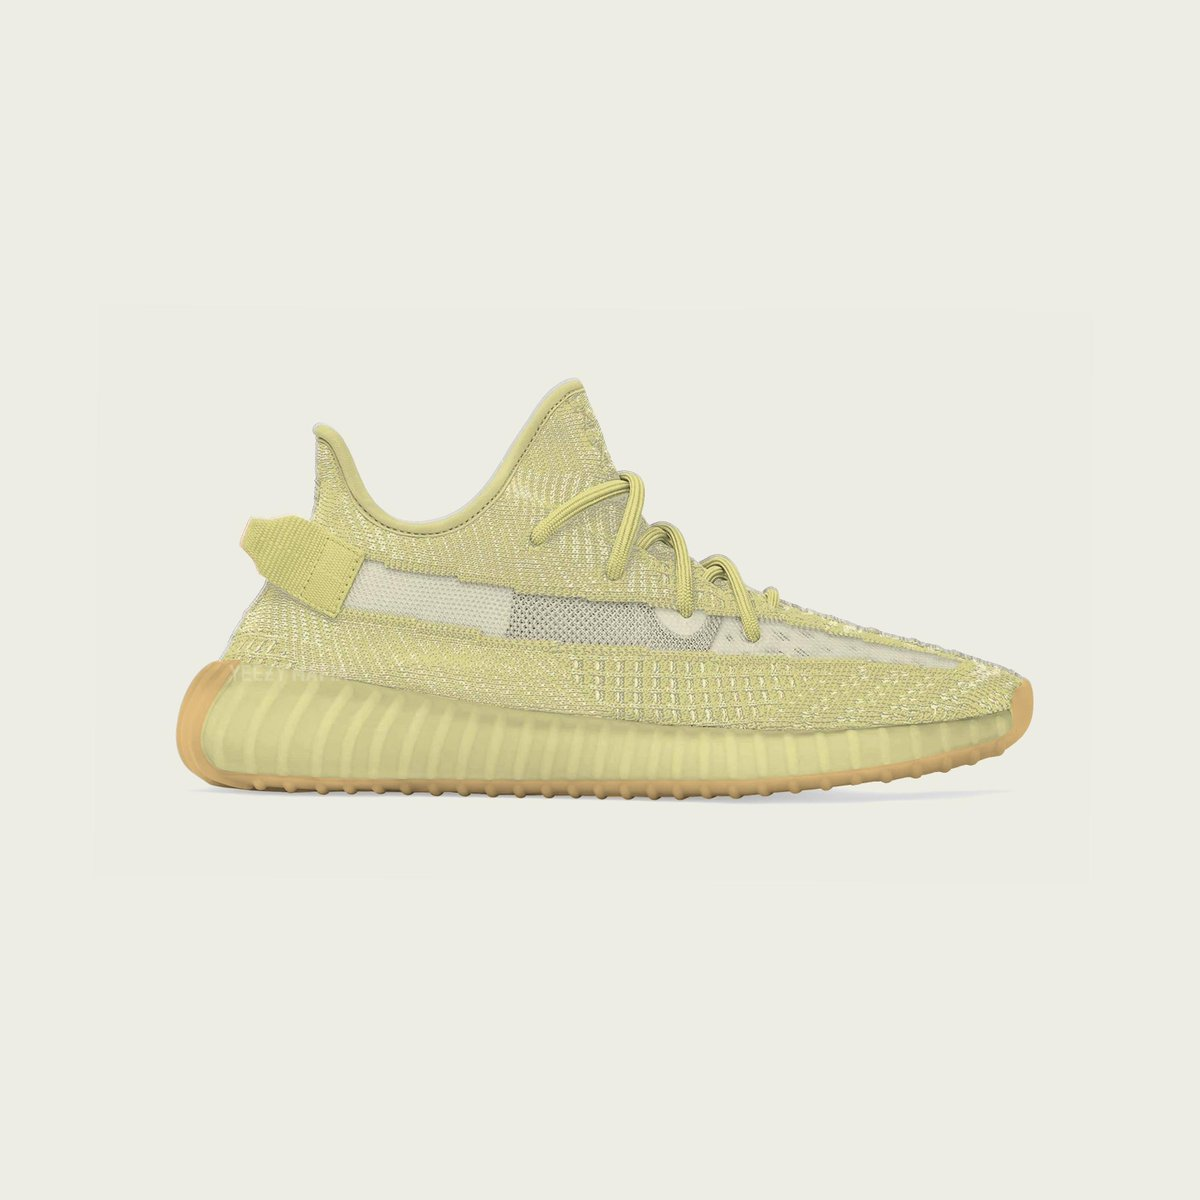 3bb50864f16 YEEZY BOOST 350 V2 ANTLIA SPECIAL RELEASE COMING  SOONpic.twitter.com X2roVS64DW